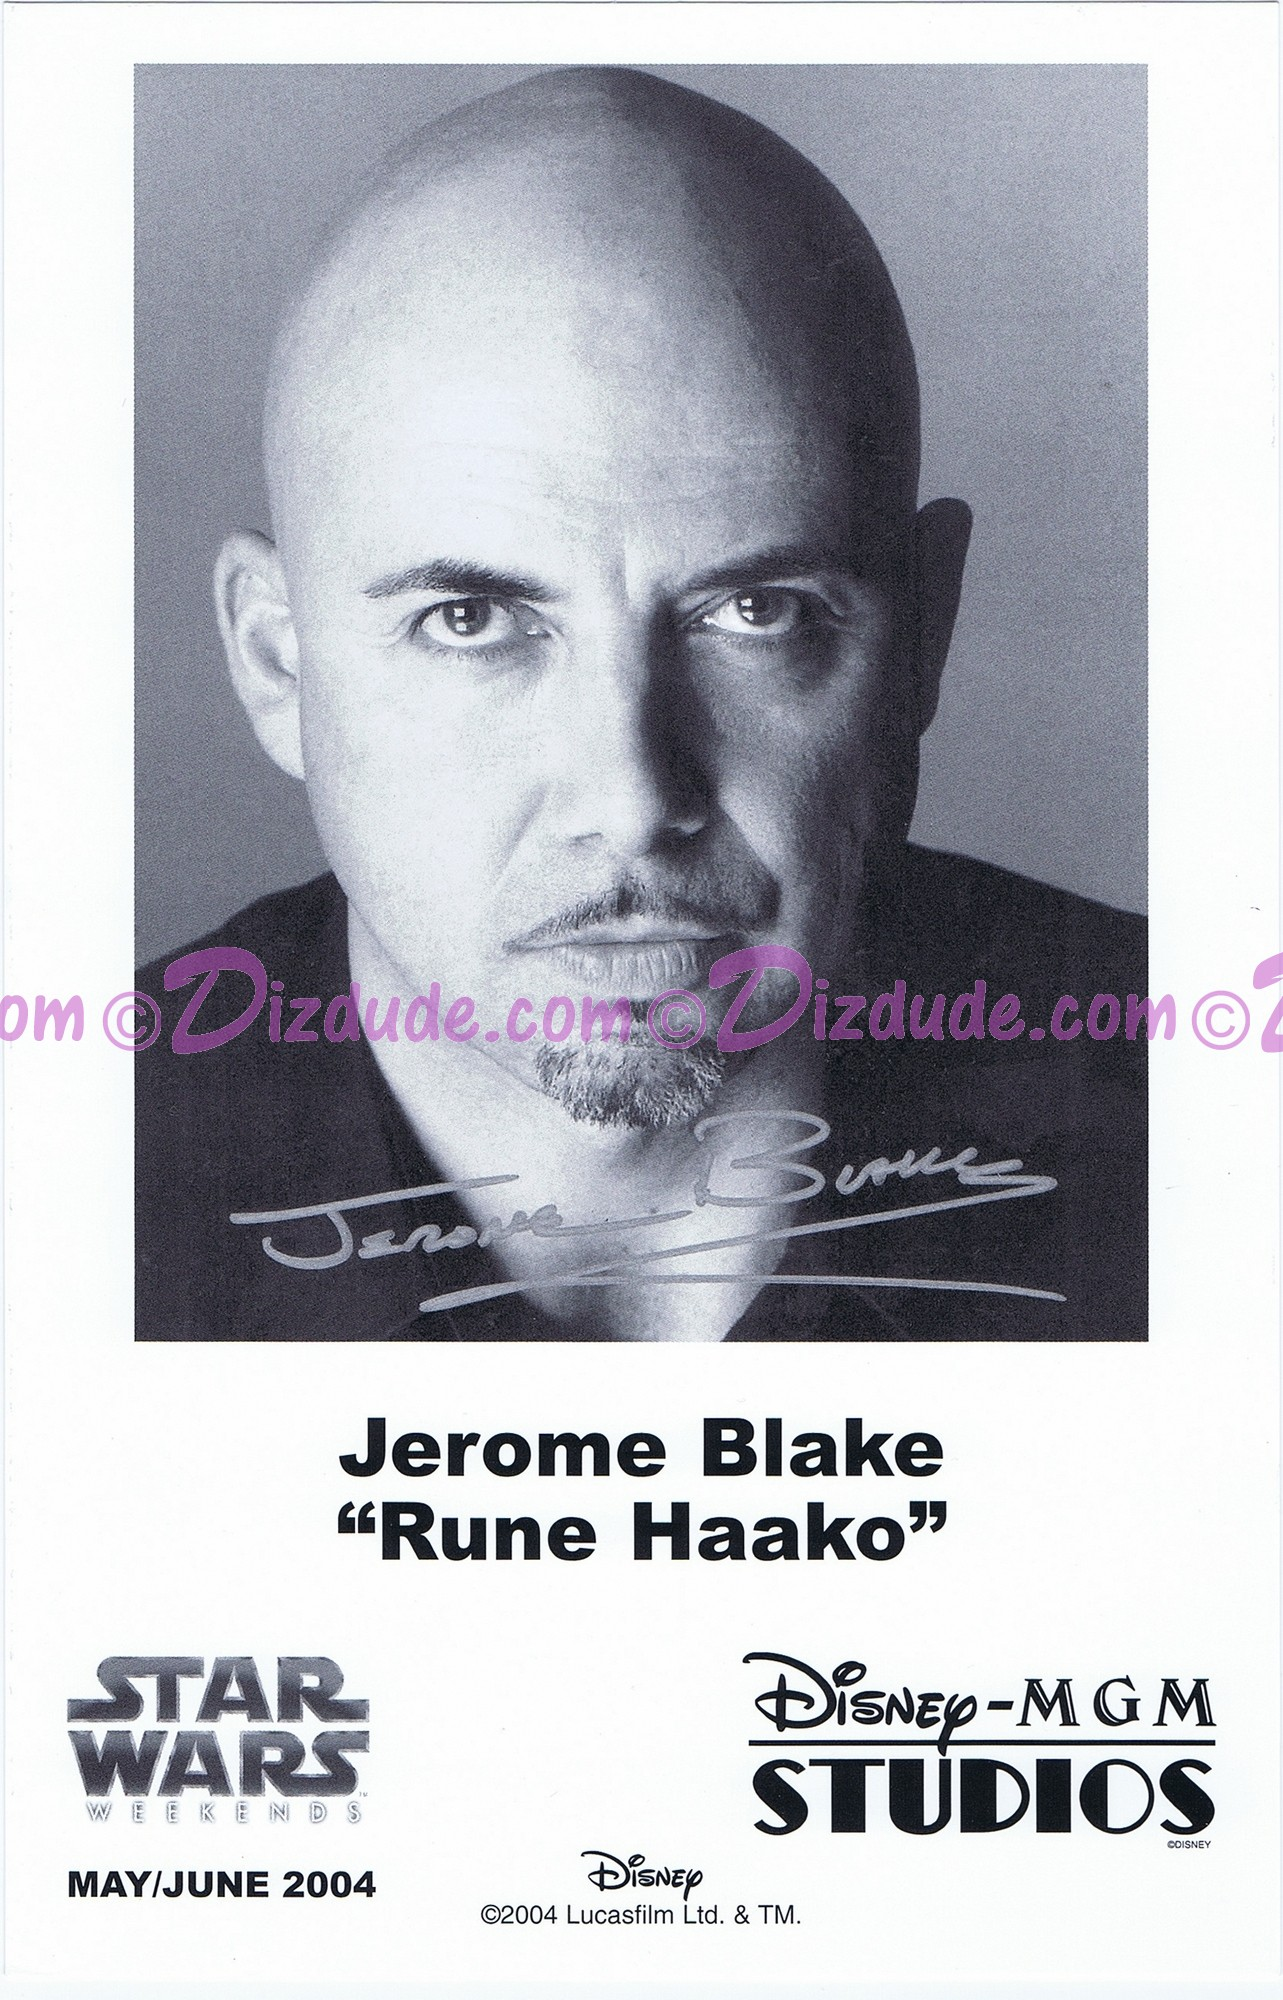 Jerome Blake who played Rune Haako Presigned Official Star Wars Weekends 2004 Celebrity Collector Photo © Dizdude.com